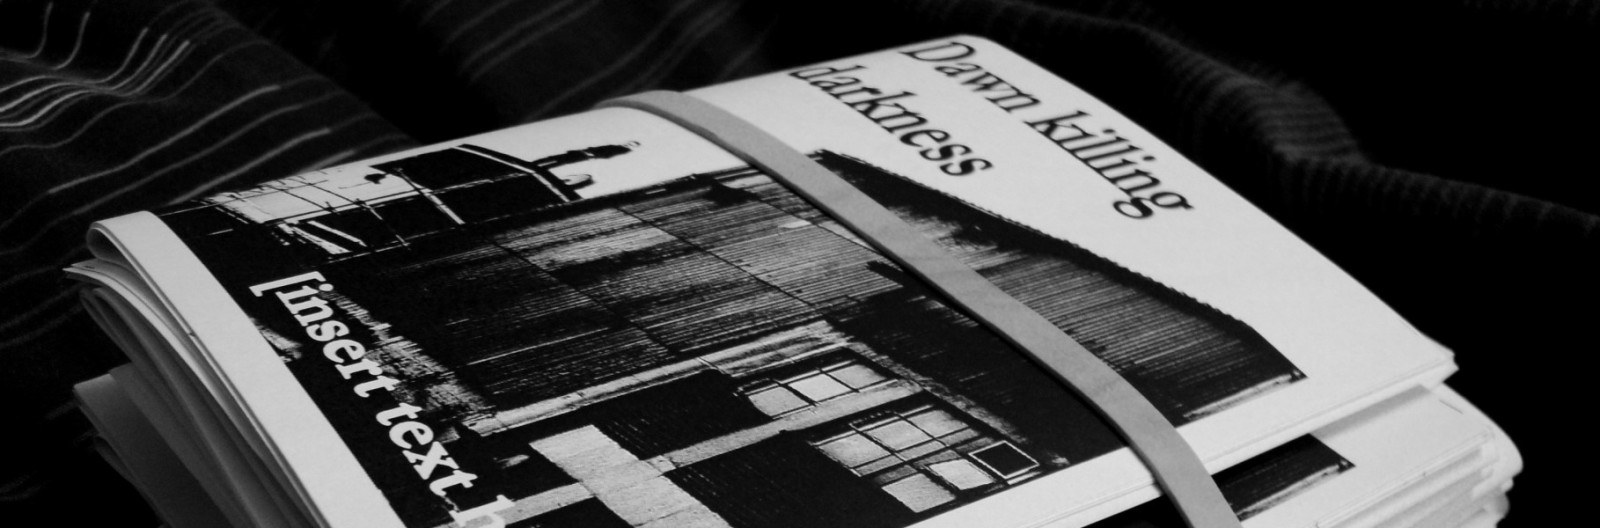 Dawn Killing Darkness contemporary poetry zine, edited by Katie Hale and Dominique Dunne